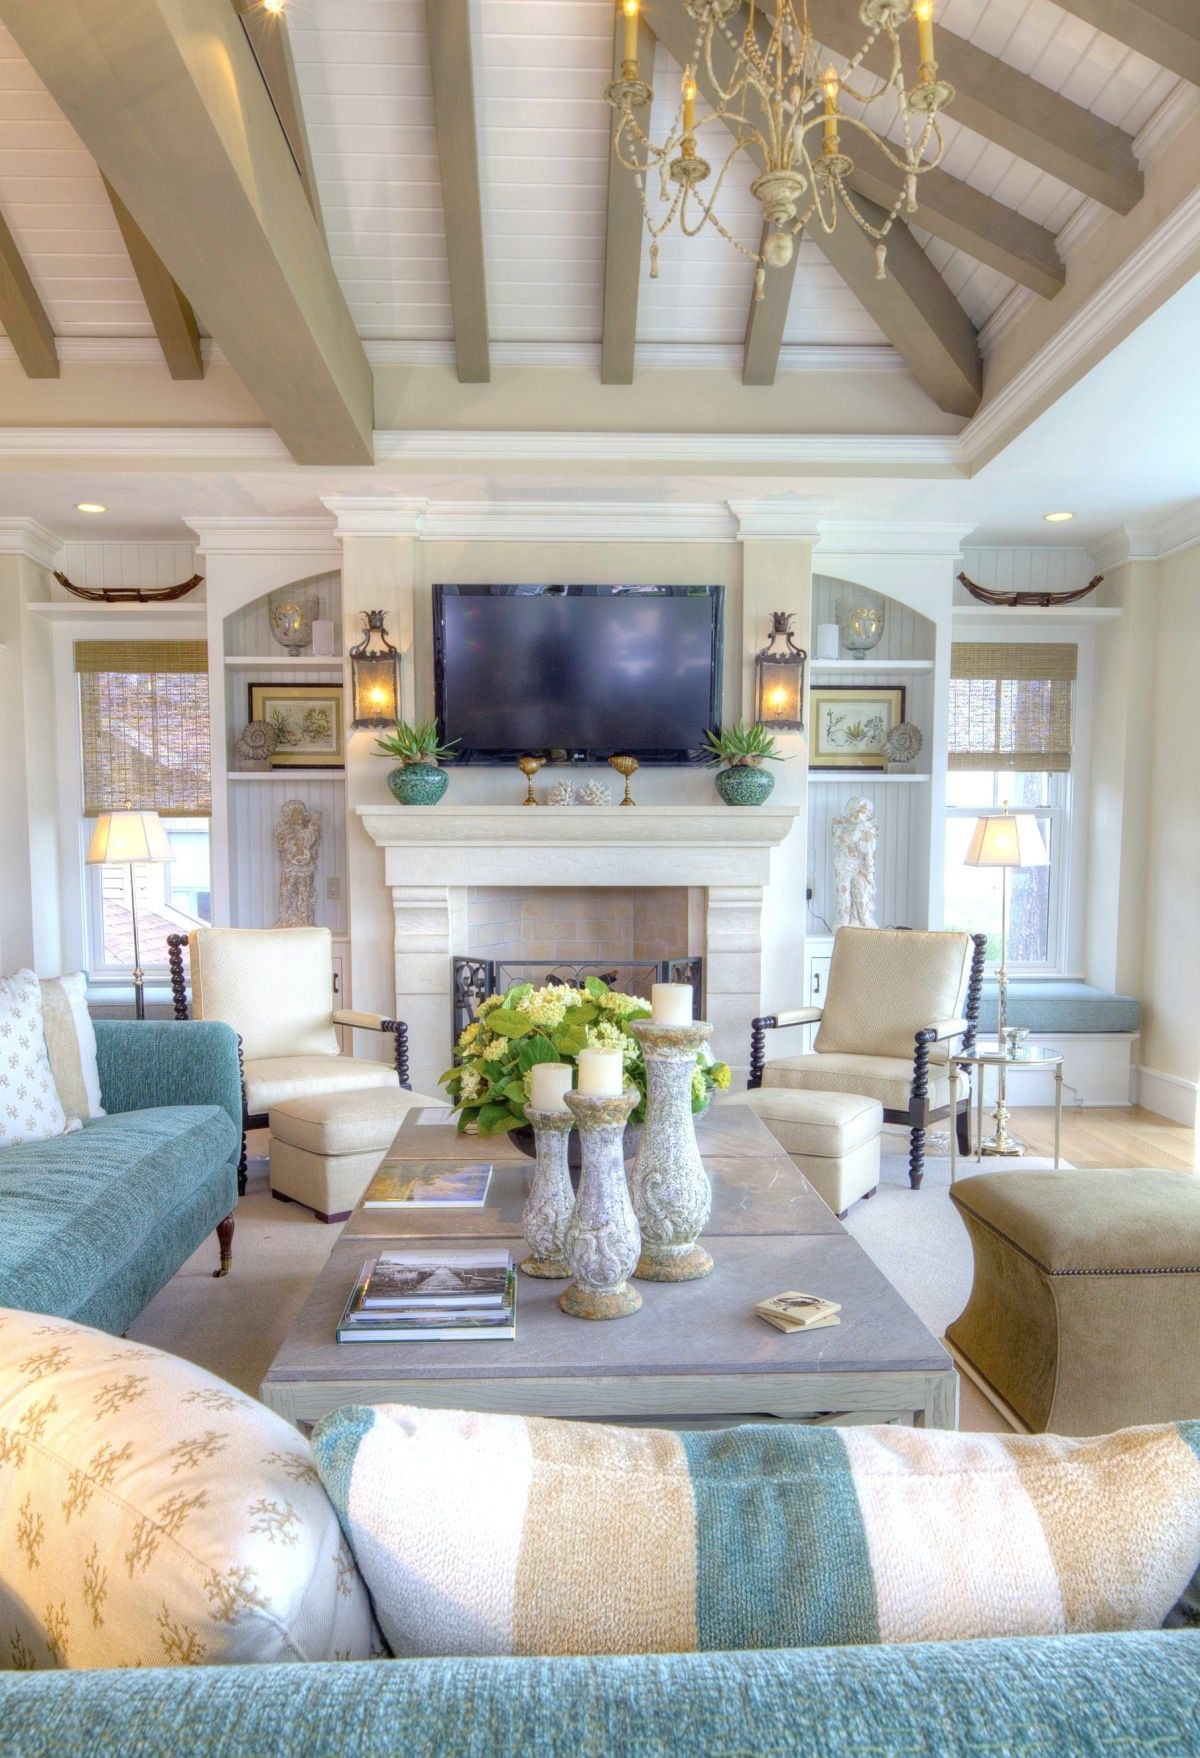 Marvelous How To Install Faux Wood Beams | Beam Me Up Scottie!